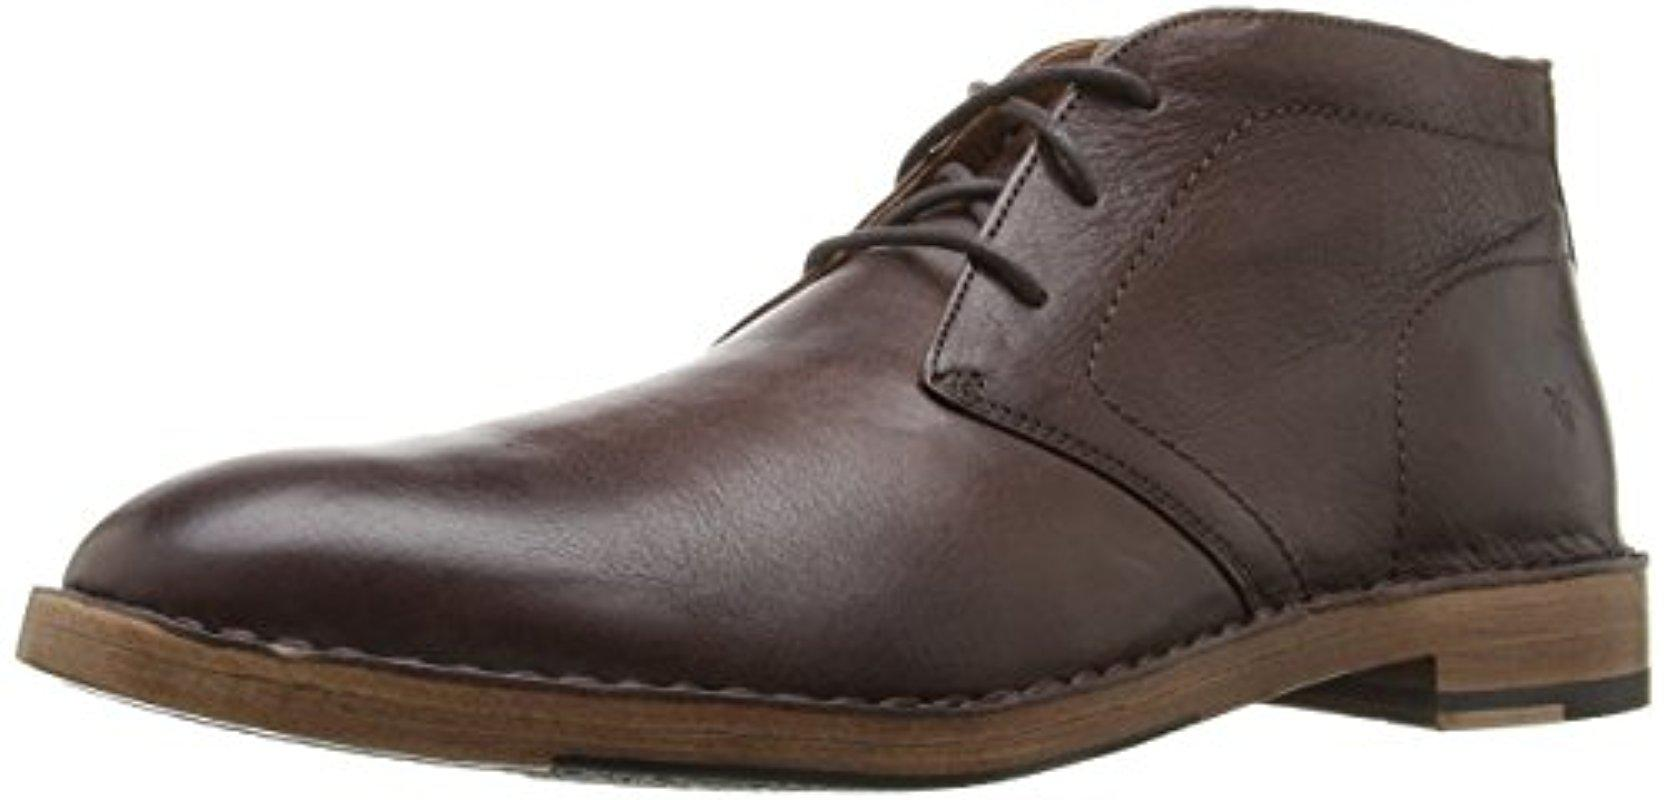 Frye. Men's Brown Mark Chukka Boot